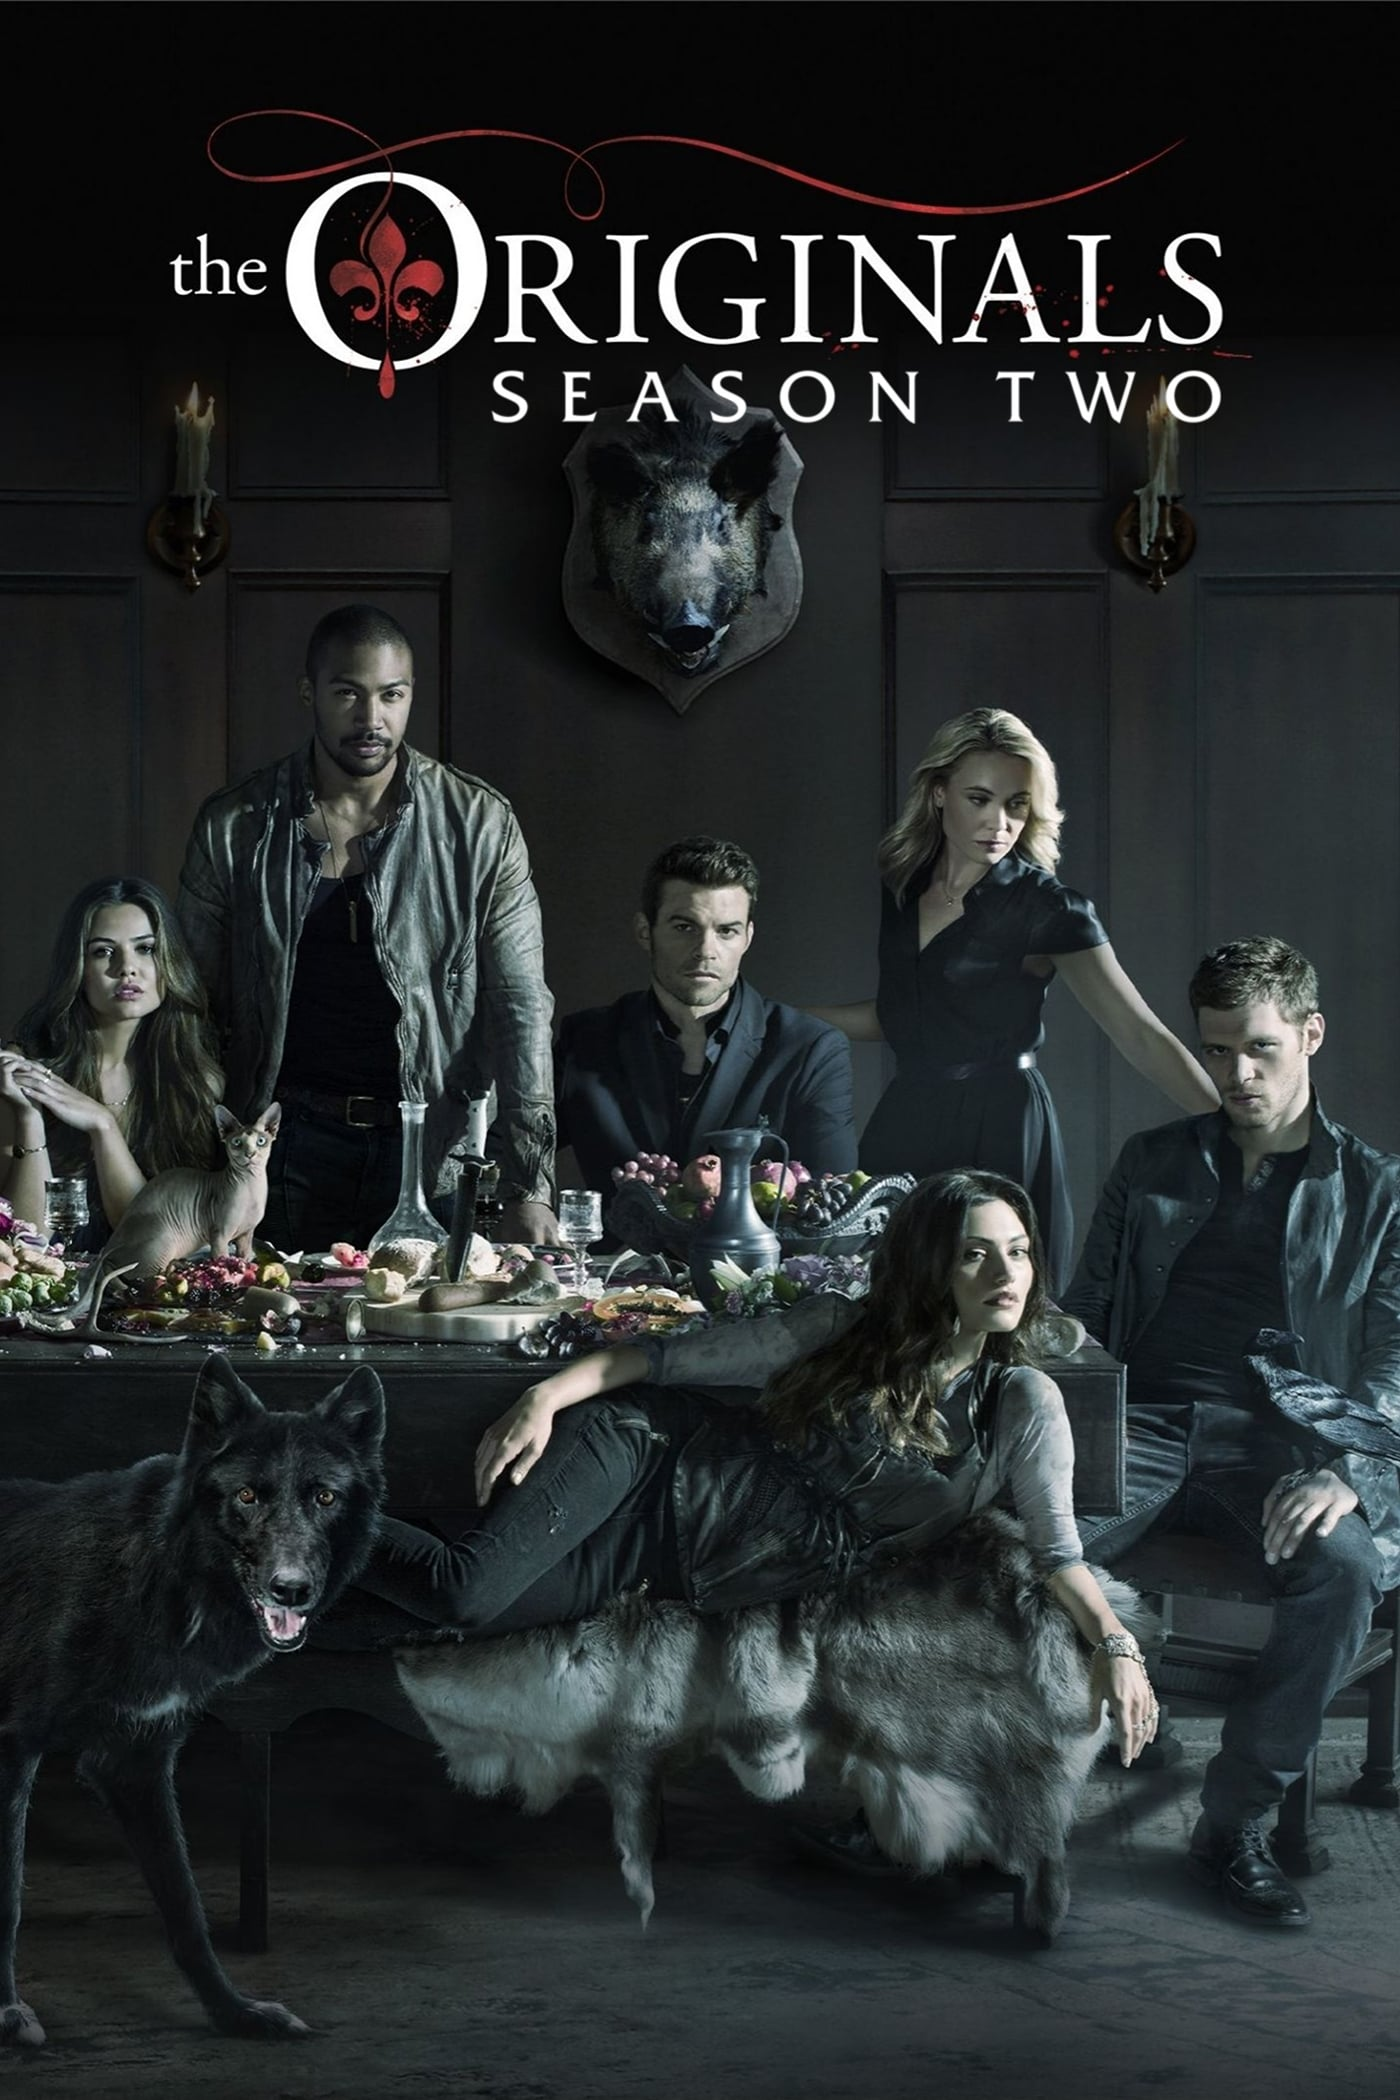 The Originals Streaming Sur Zone Telechargement - Serie 2014 -  Telechargement Sur Zone Telechargement